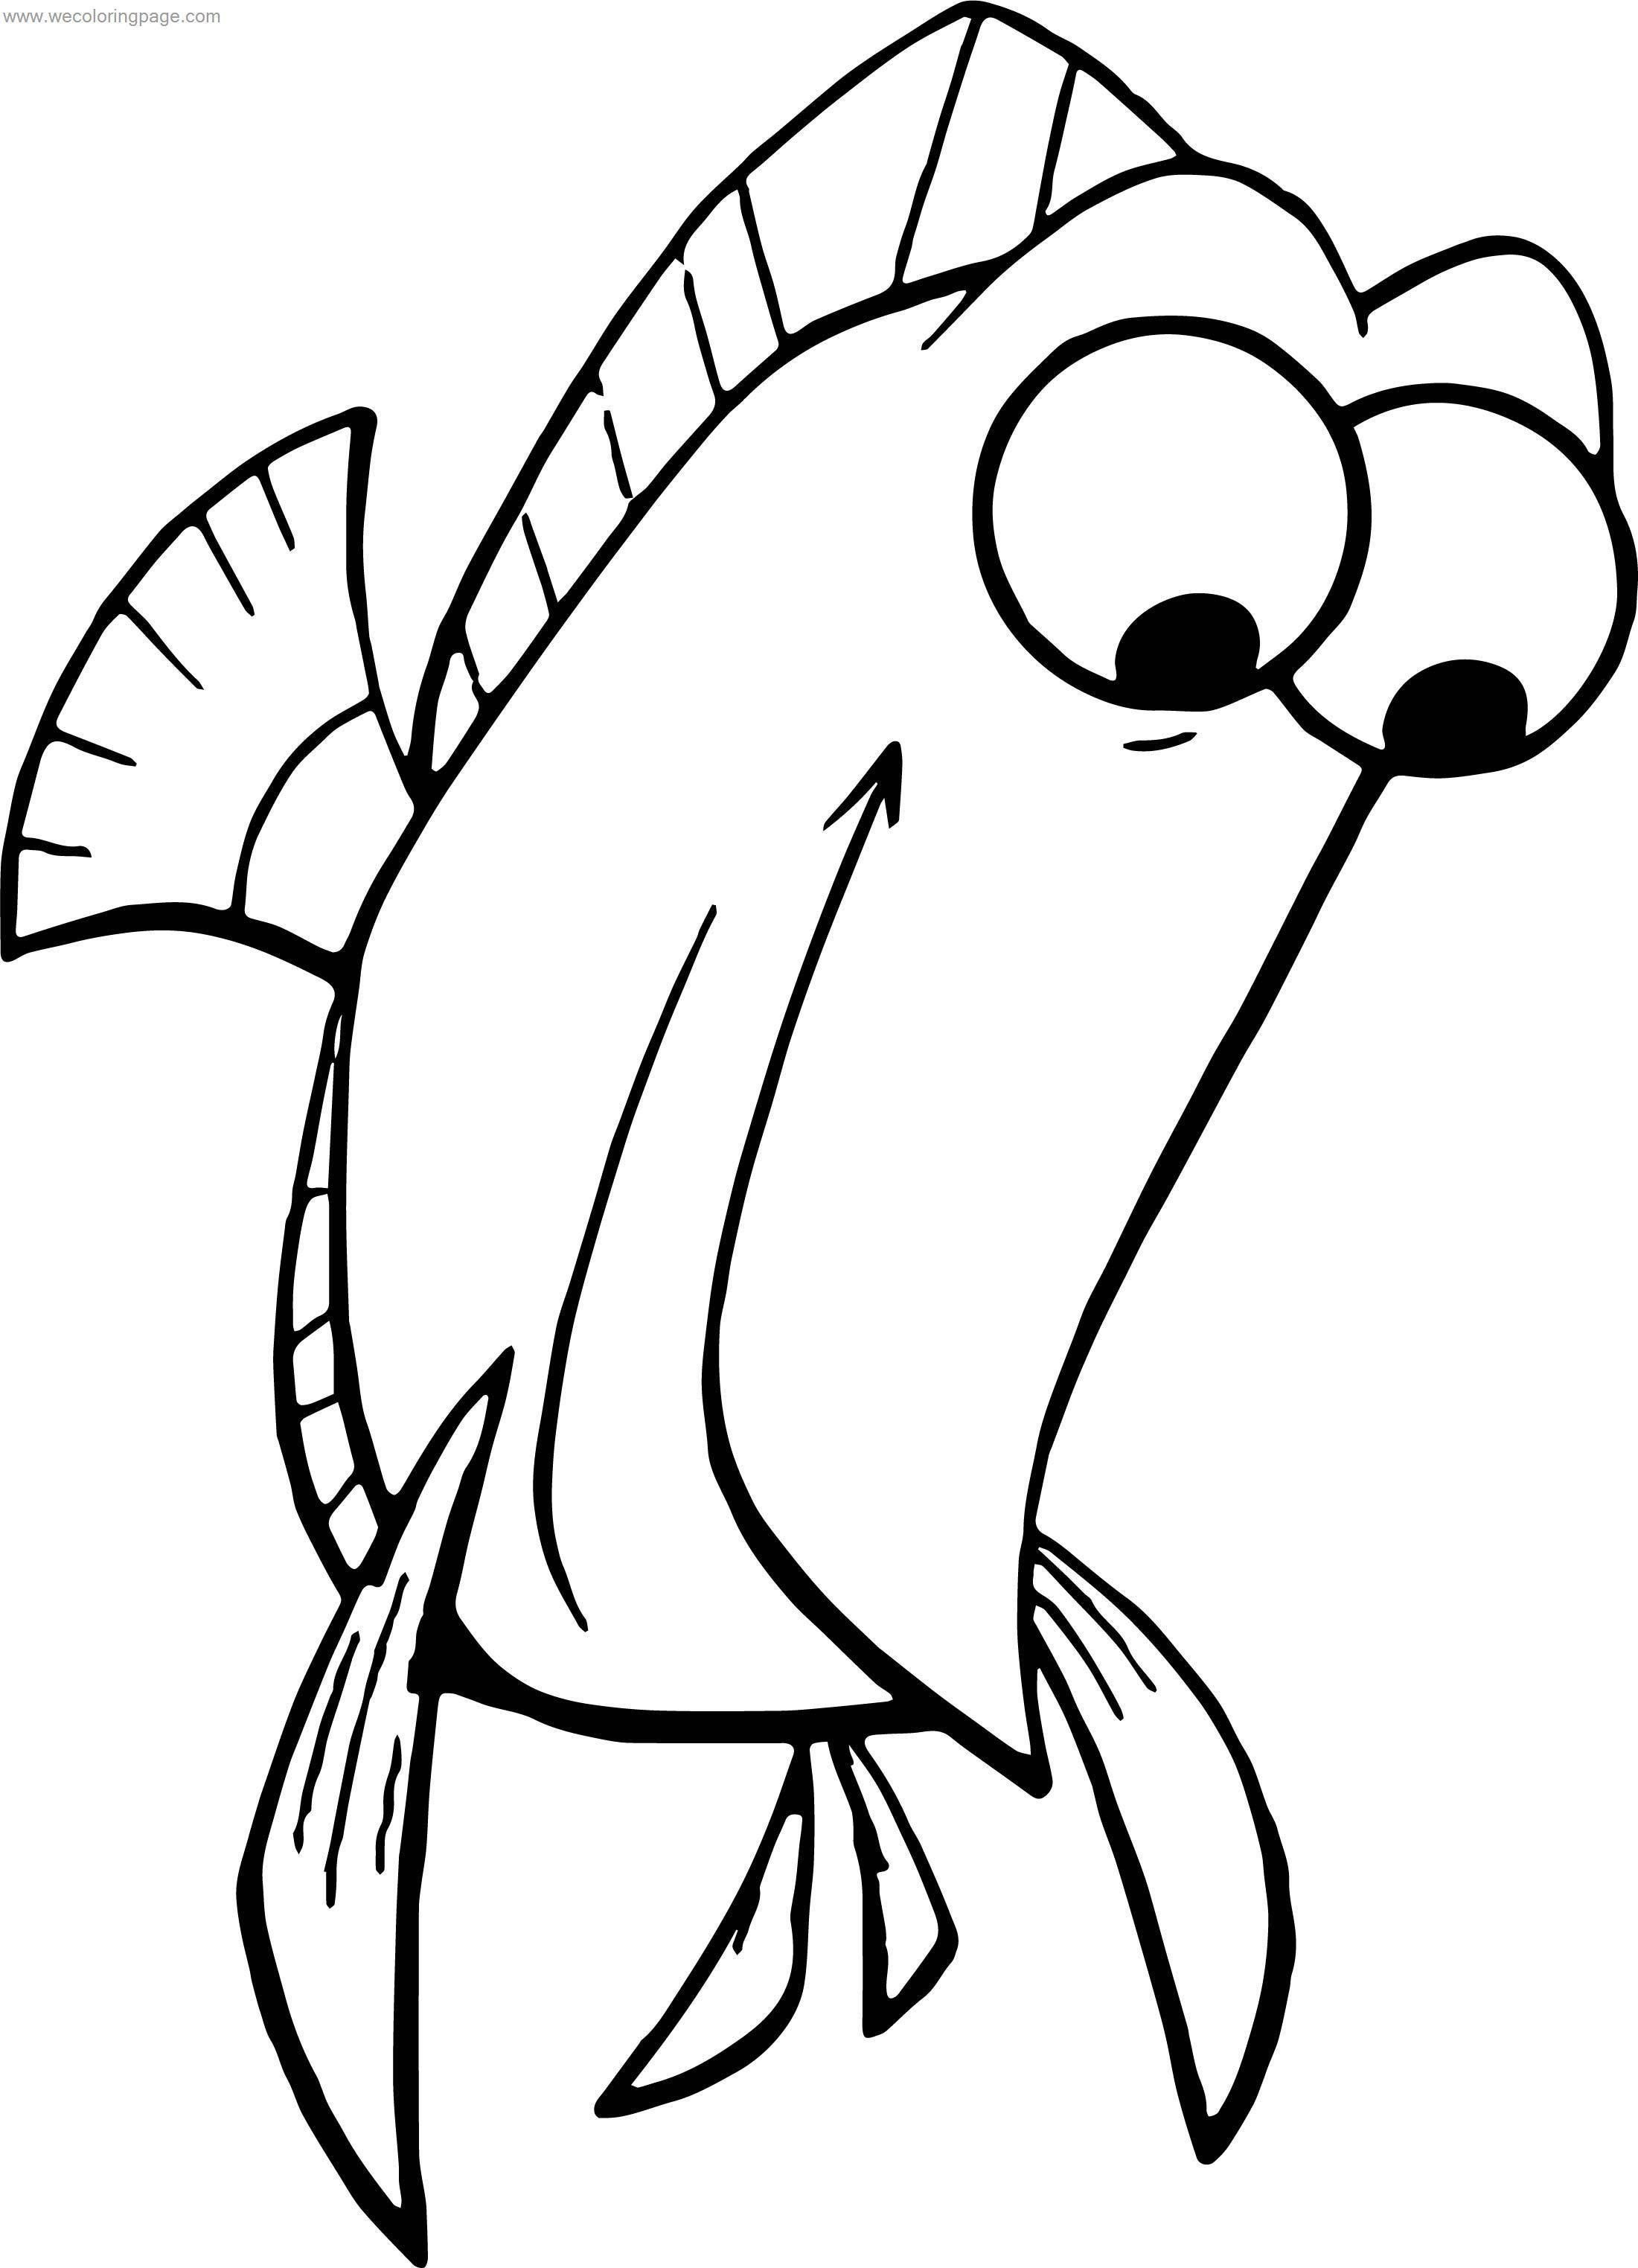 Disney fish coloring pages in 2020 Nemo coloring pages